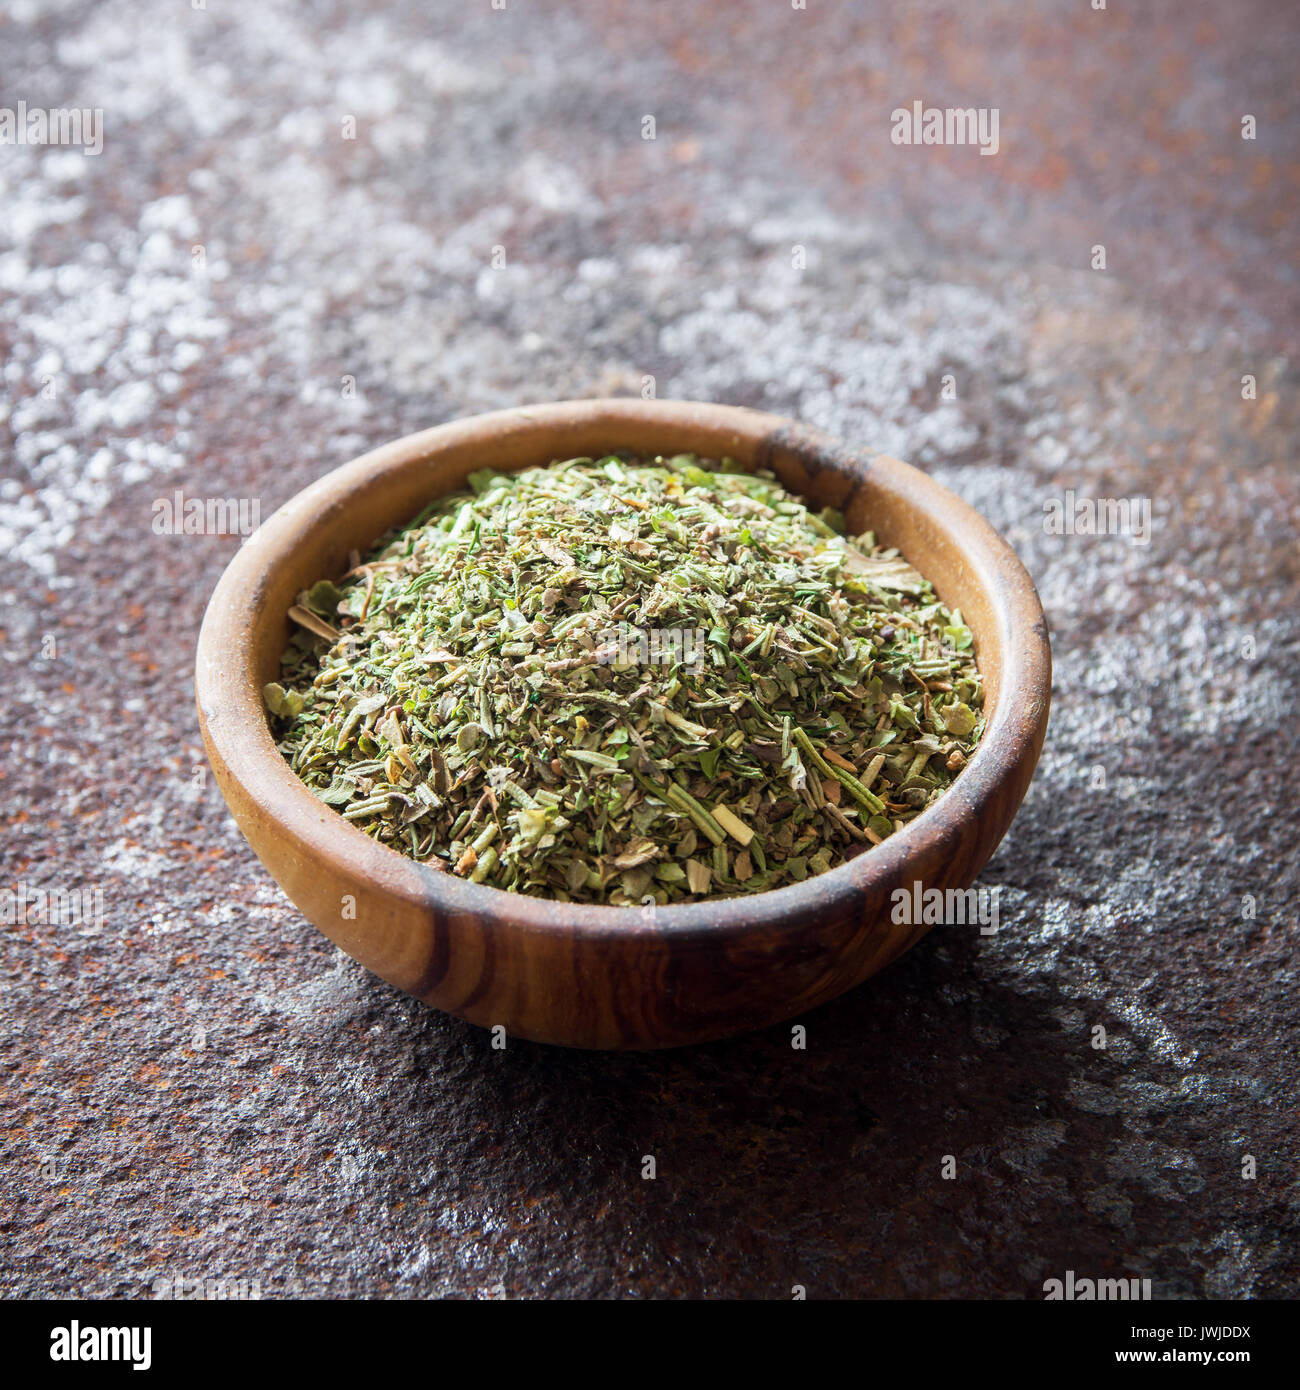 Mixed Italian Herbs Seasoning on rustic metal background, copy space. Dried Herbs Seasoning, healthy ingredient for cooking. - Stock Image